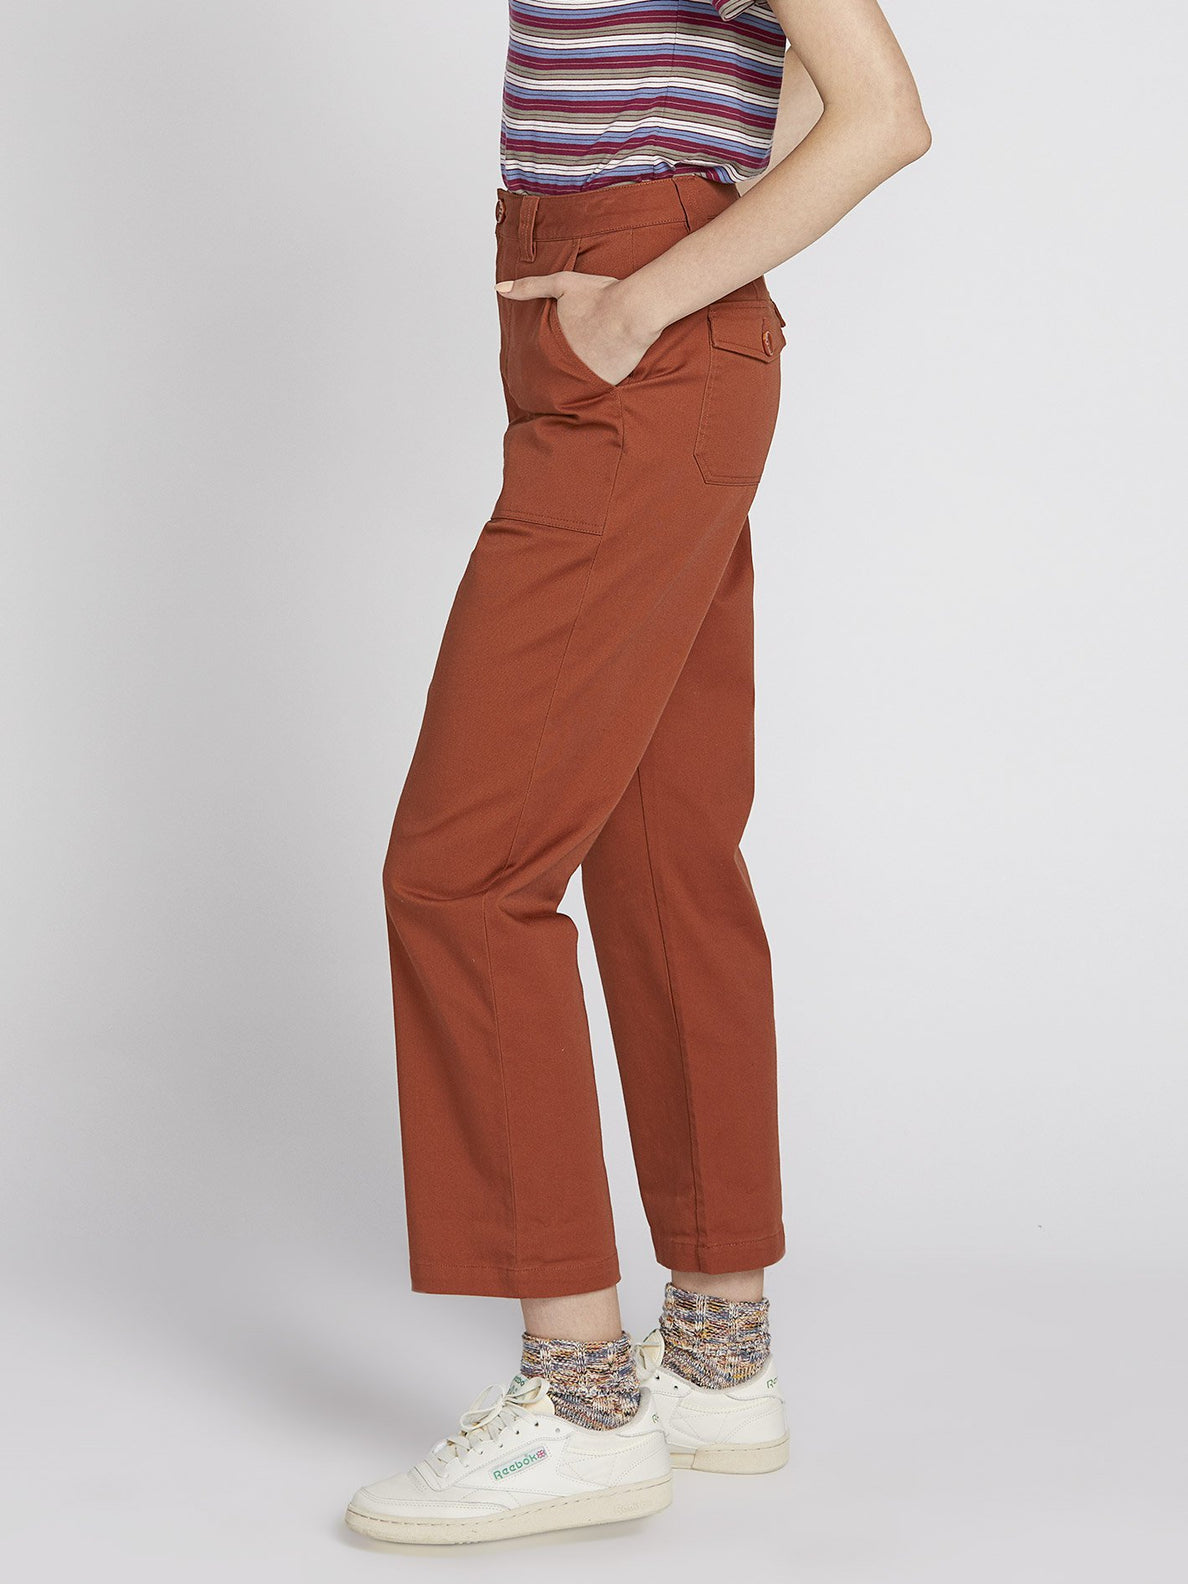 Frochickie Carpenter Pant - Rust (B1131903_RST) [1]